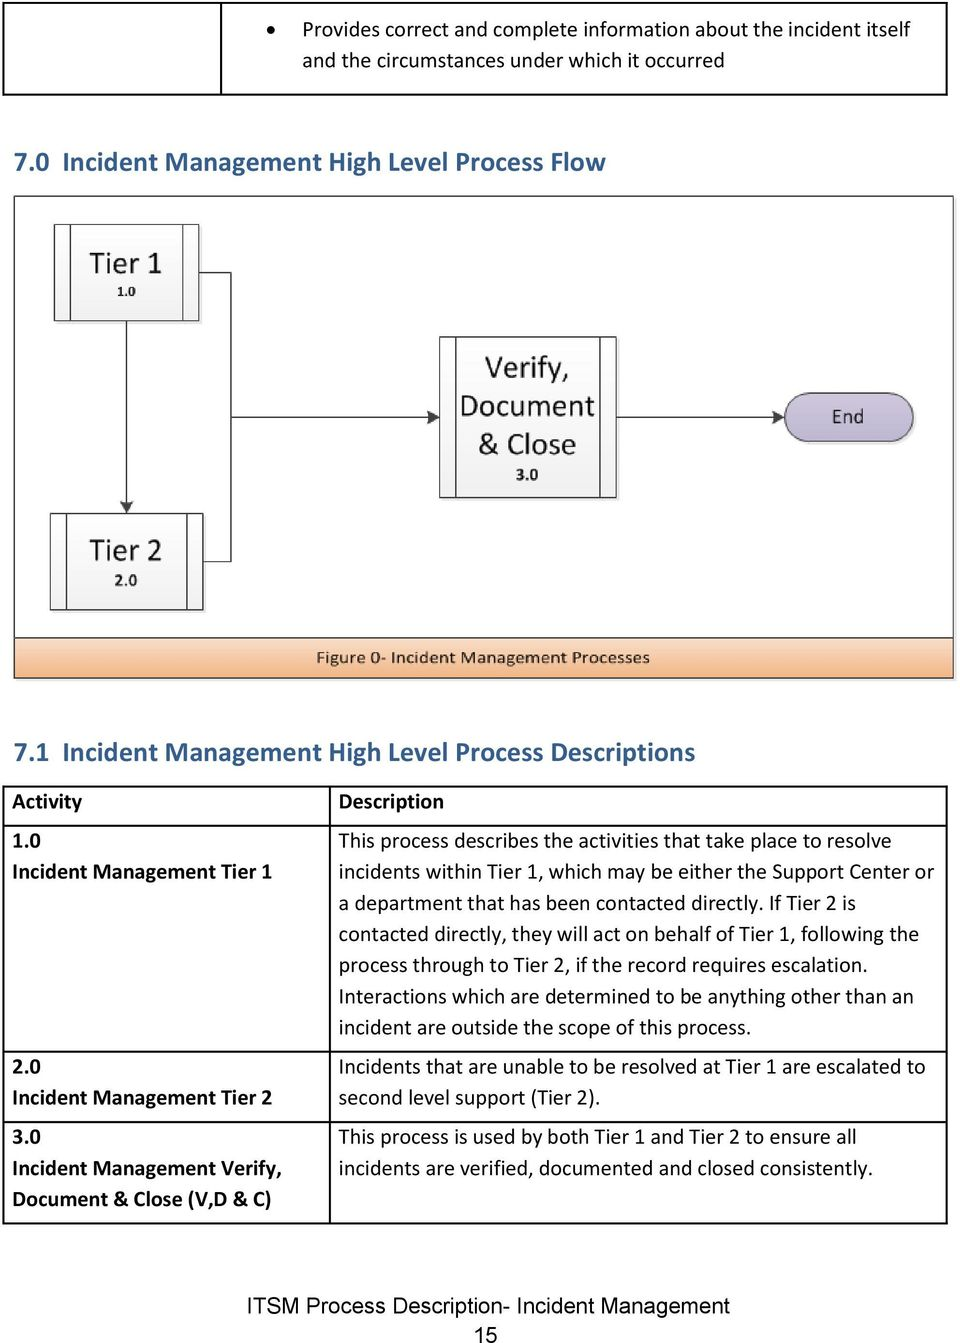 0 Incident Management Verify, Document & Close (V,D & C) Description This process describes the activities that take place to resolve incidents within Tier 1, which may be either the Support Center